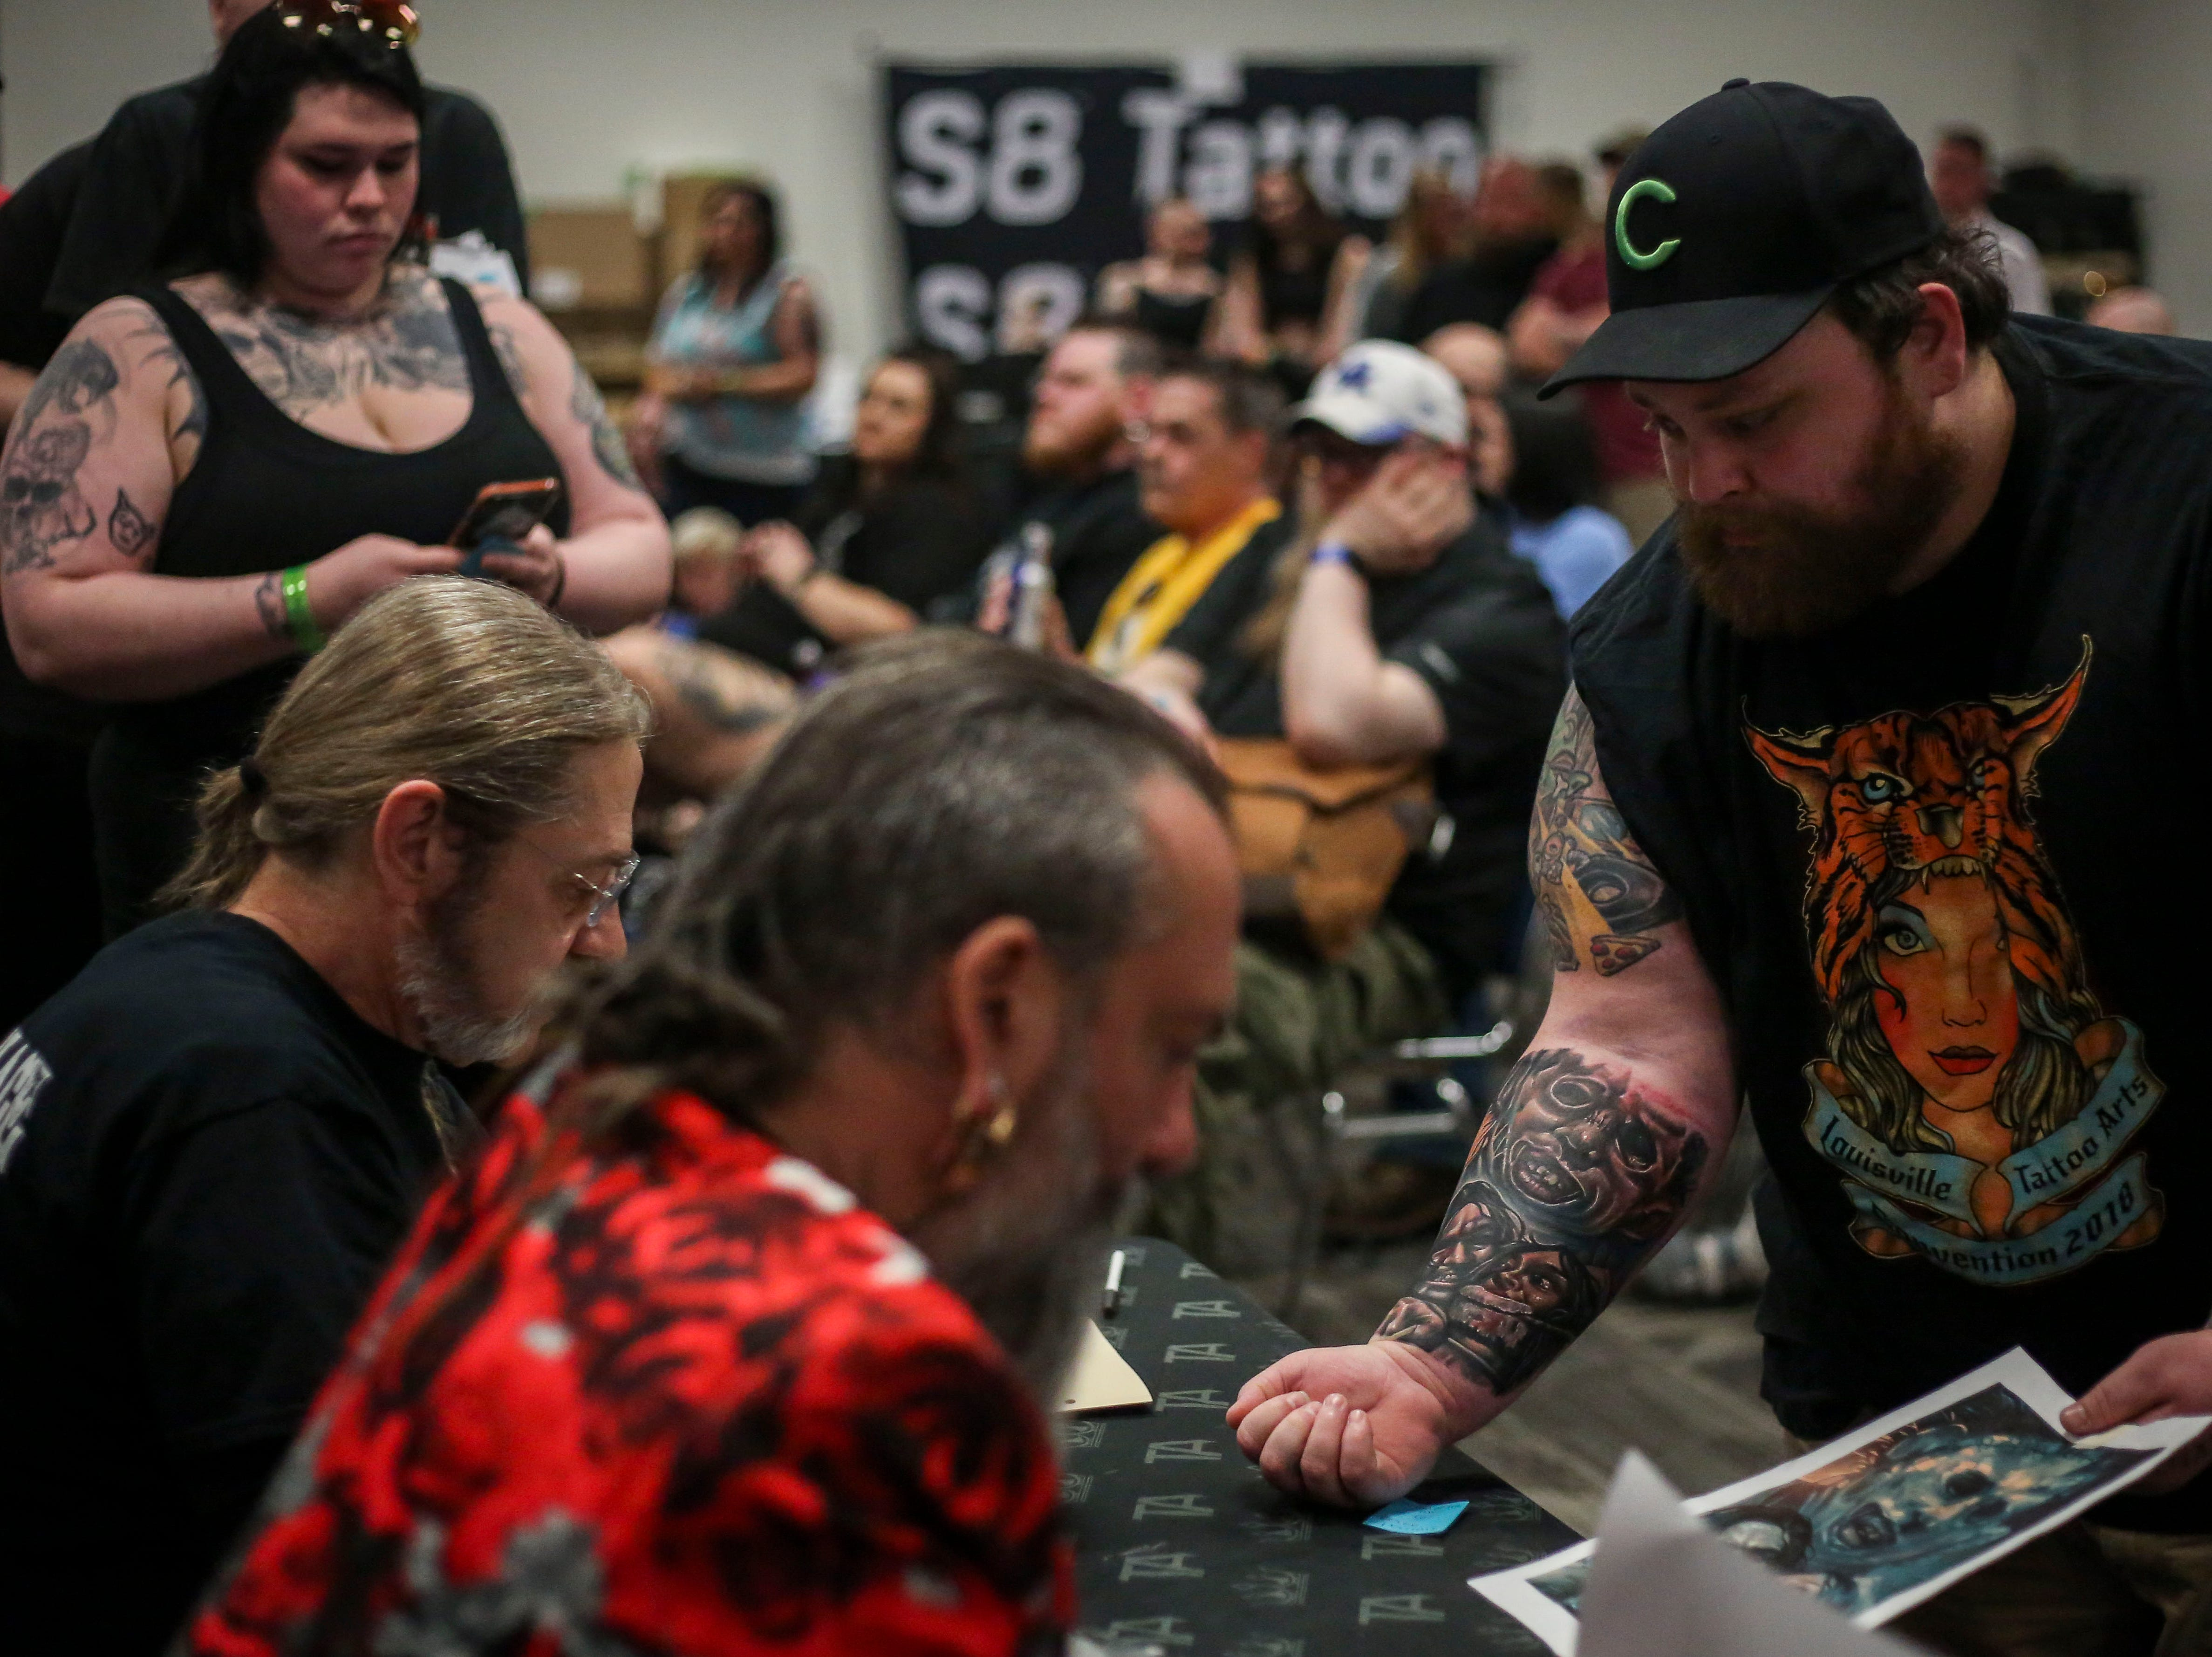 Adam Farmer shows off his arm piece to the judges during the tattoo contest at the 8th Annual Louisville Tattoo Arts Convention put on by Villain Arts at the Kentucky Expo Center in Louisville, Ky. on Saturday, April 13, 2019.